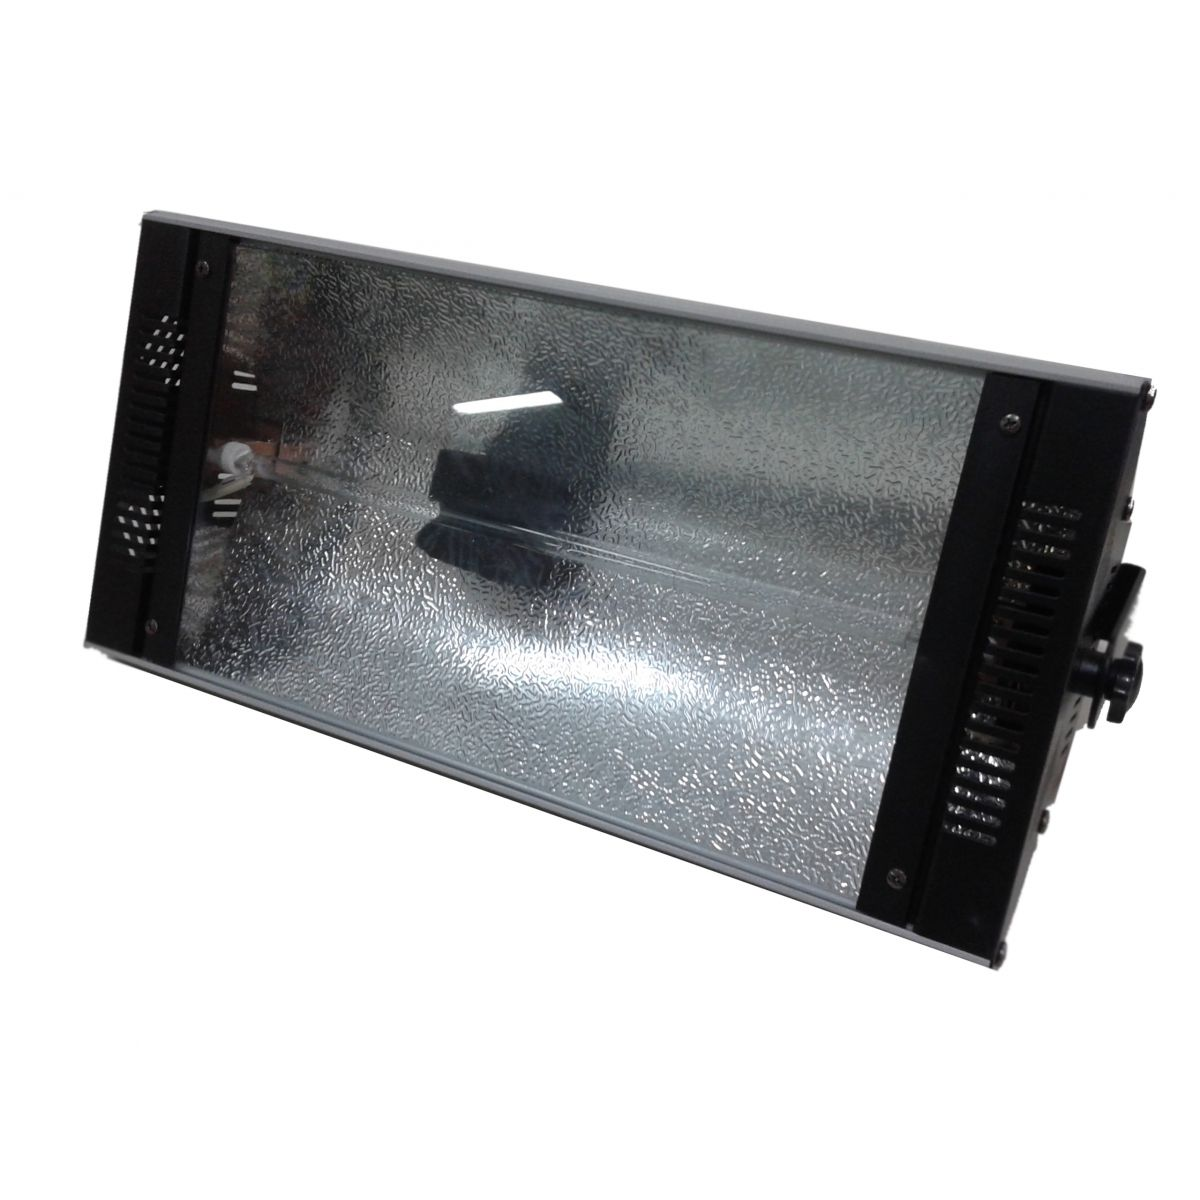 Strobo 1500W 220V - YX-323 - AH LIGHT